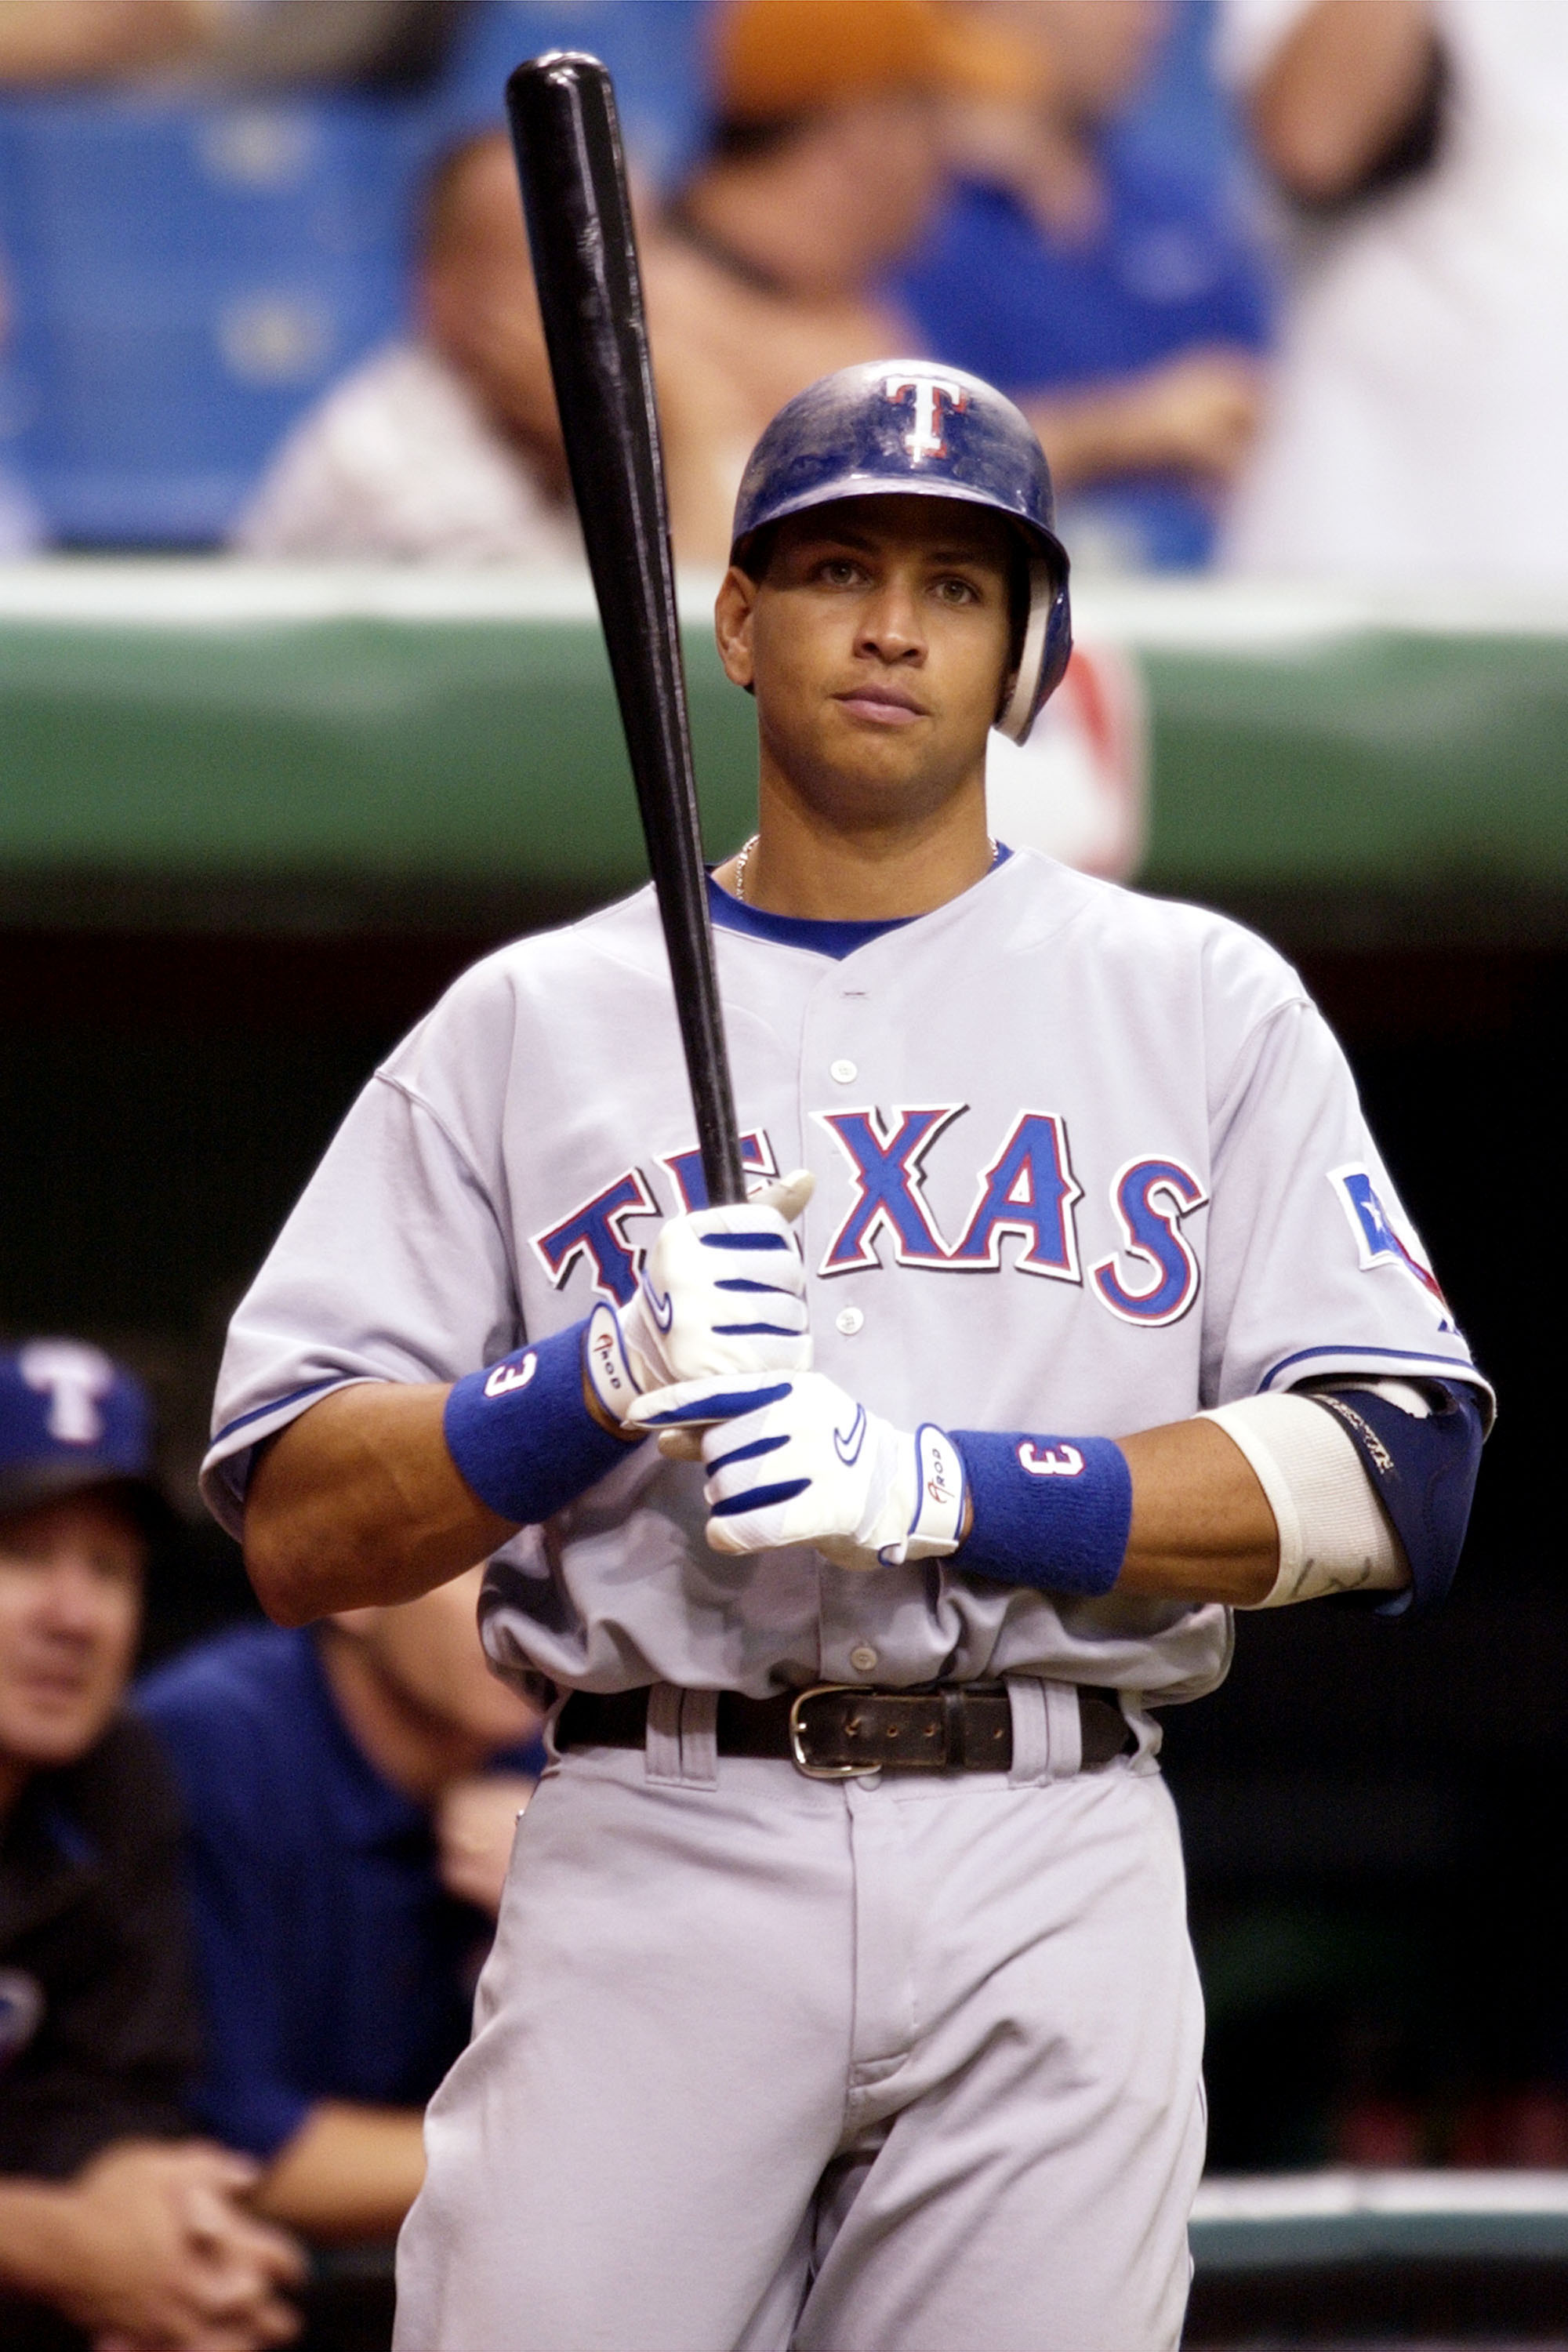 Texas Rangers shortstop Alex Rodriguez waits to bat  July 17, 2000 at Tropicana Field, St. Petersburgh, Florida. (Photo by A. Messerschmidt/Getty Images)